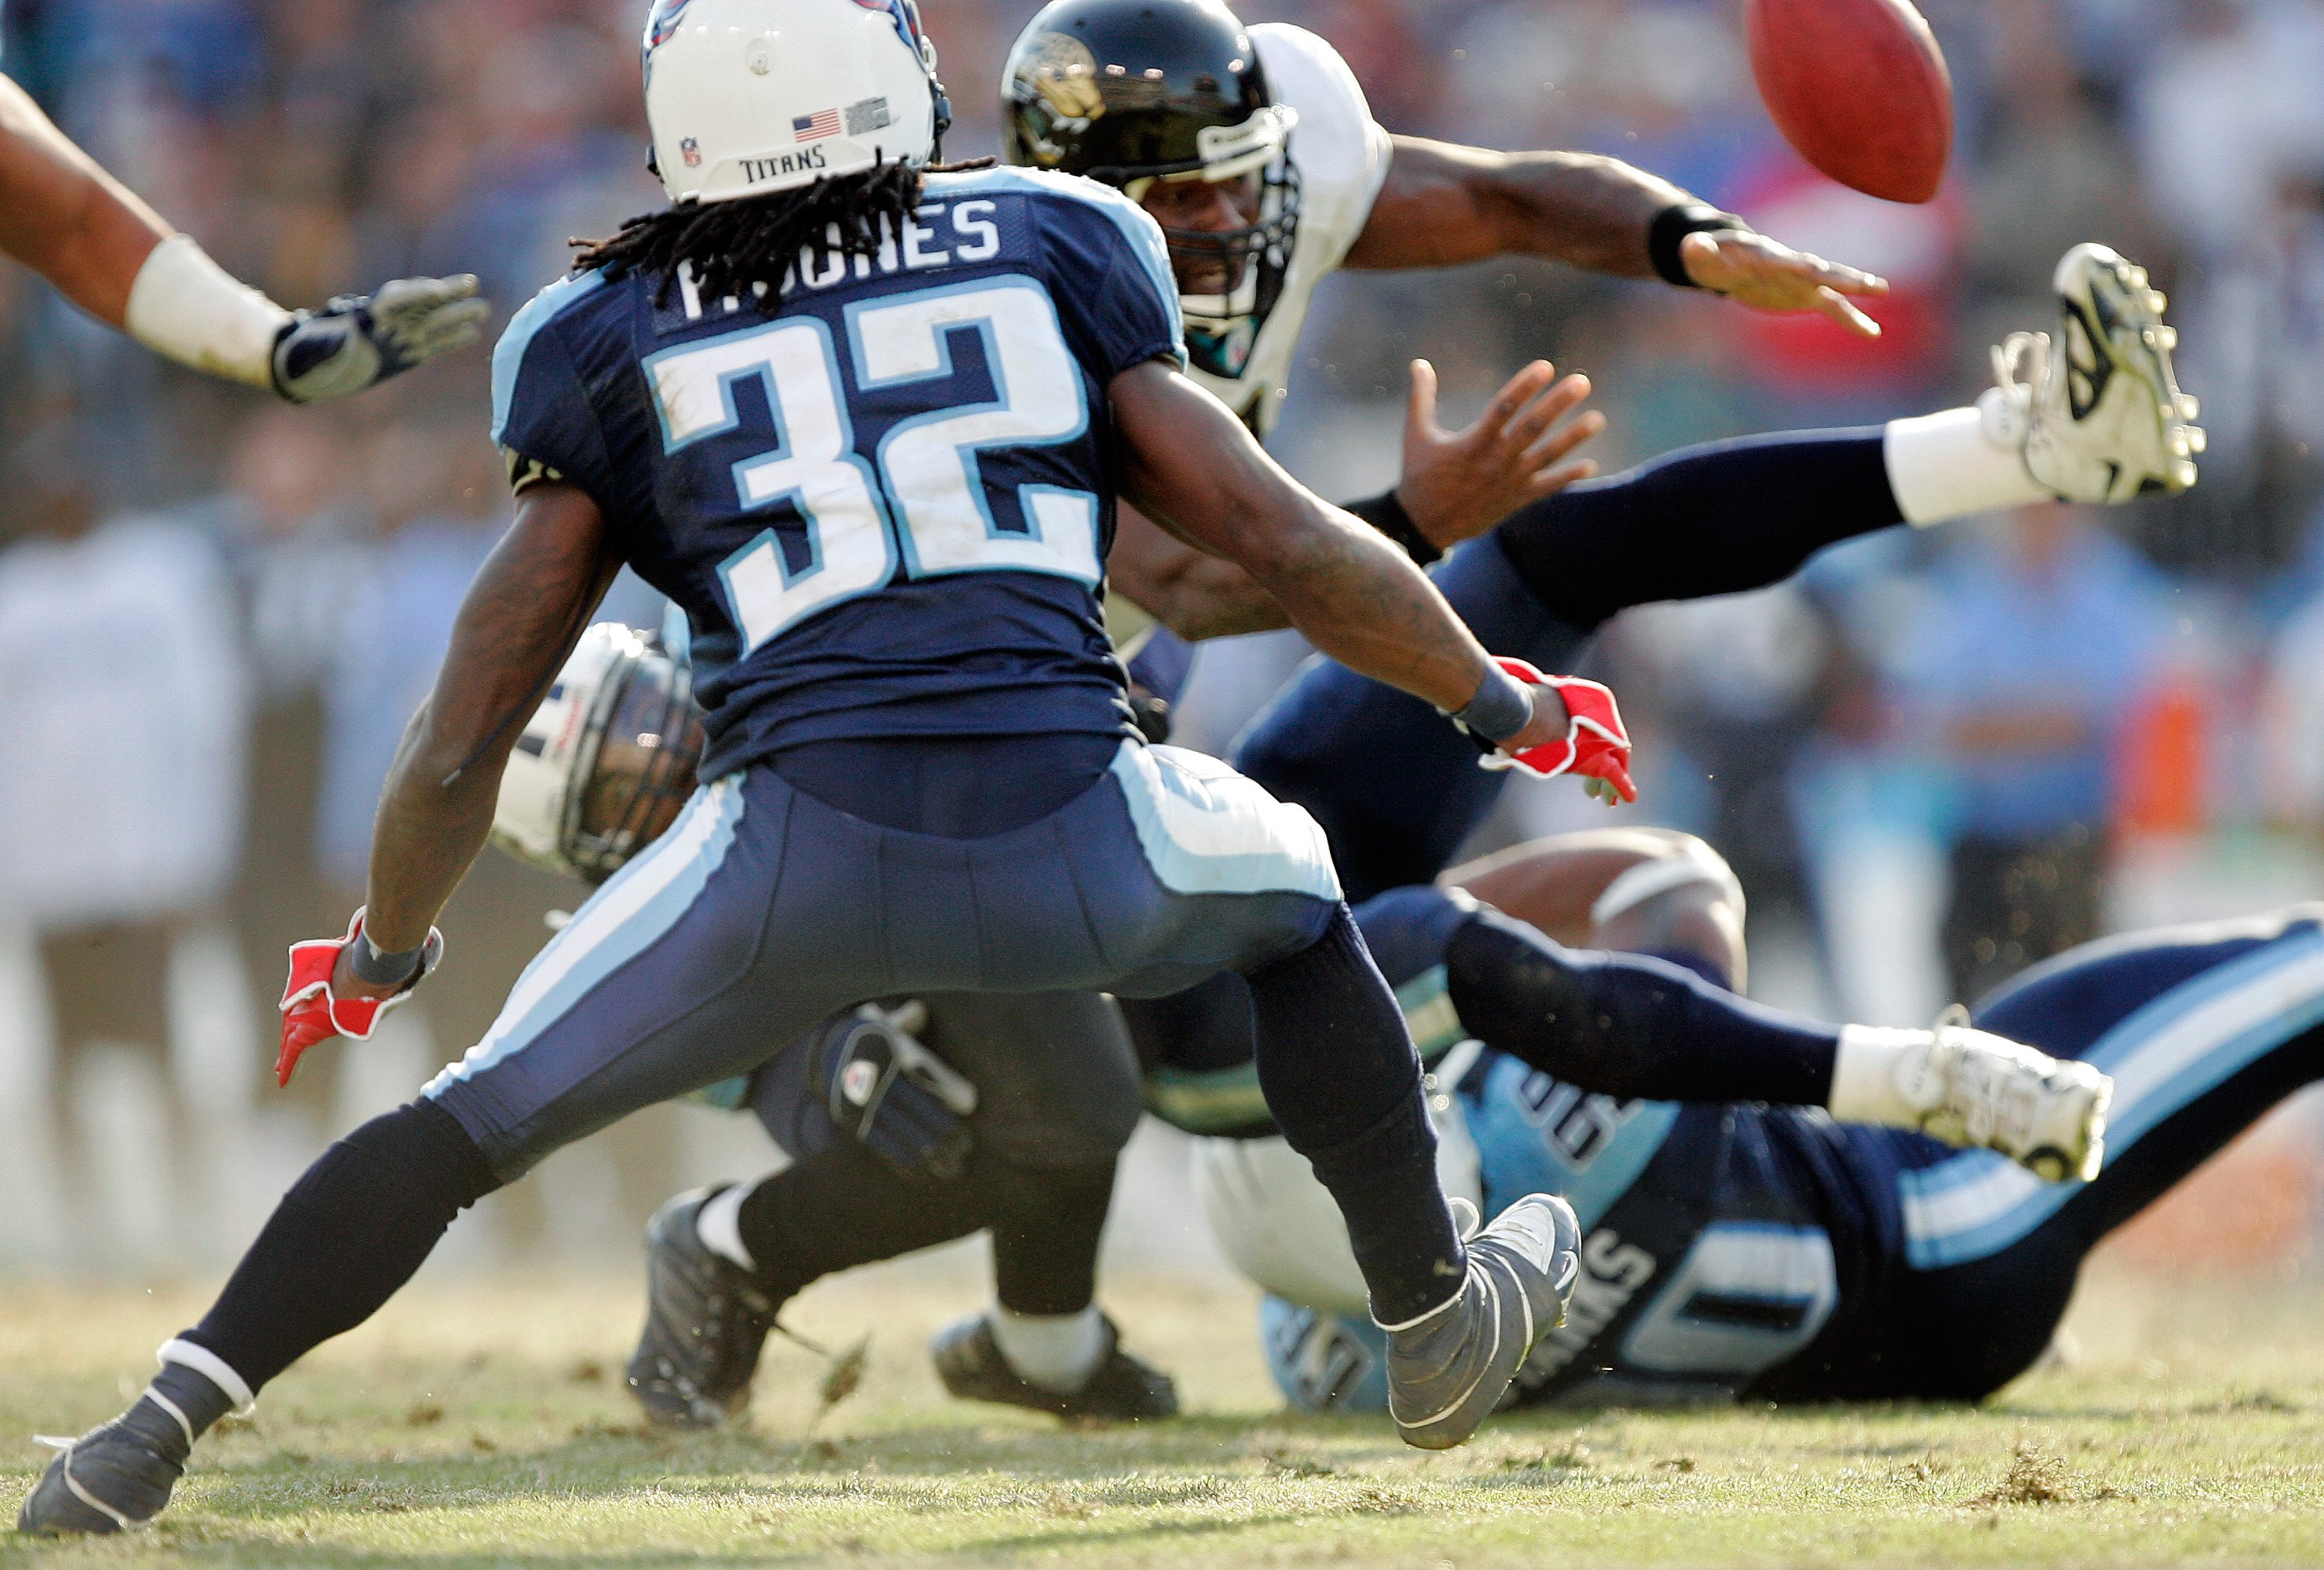 NASHVILLE, TN - DECEMBER 17:  Quarterback David Garrard #9 of the Jacksonville Jaguars fumbles the ball resulting in a 92-yard touchdown by the Tennessee Titans in the third quarter on December 17, 2006 at LP Field in Nashville, Tennessee. The Titans won